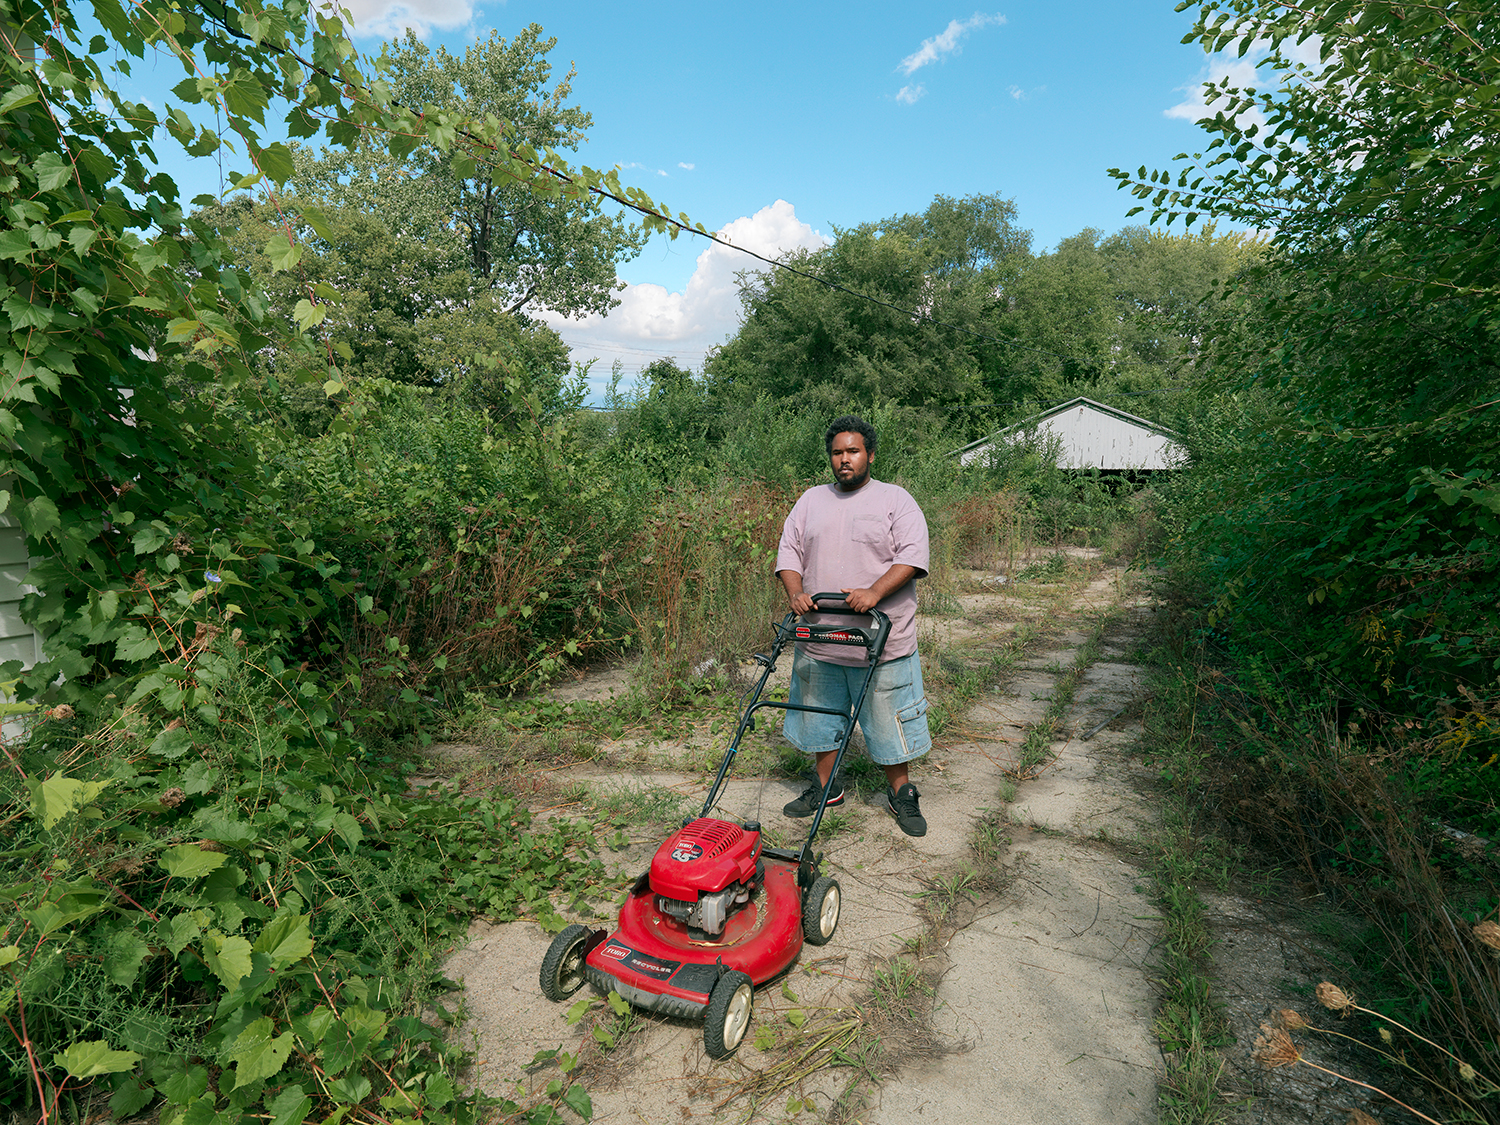 Leonard-with-Mower,-Detroit-2012.jpg